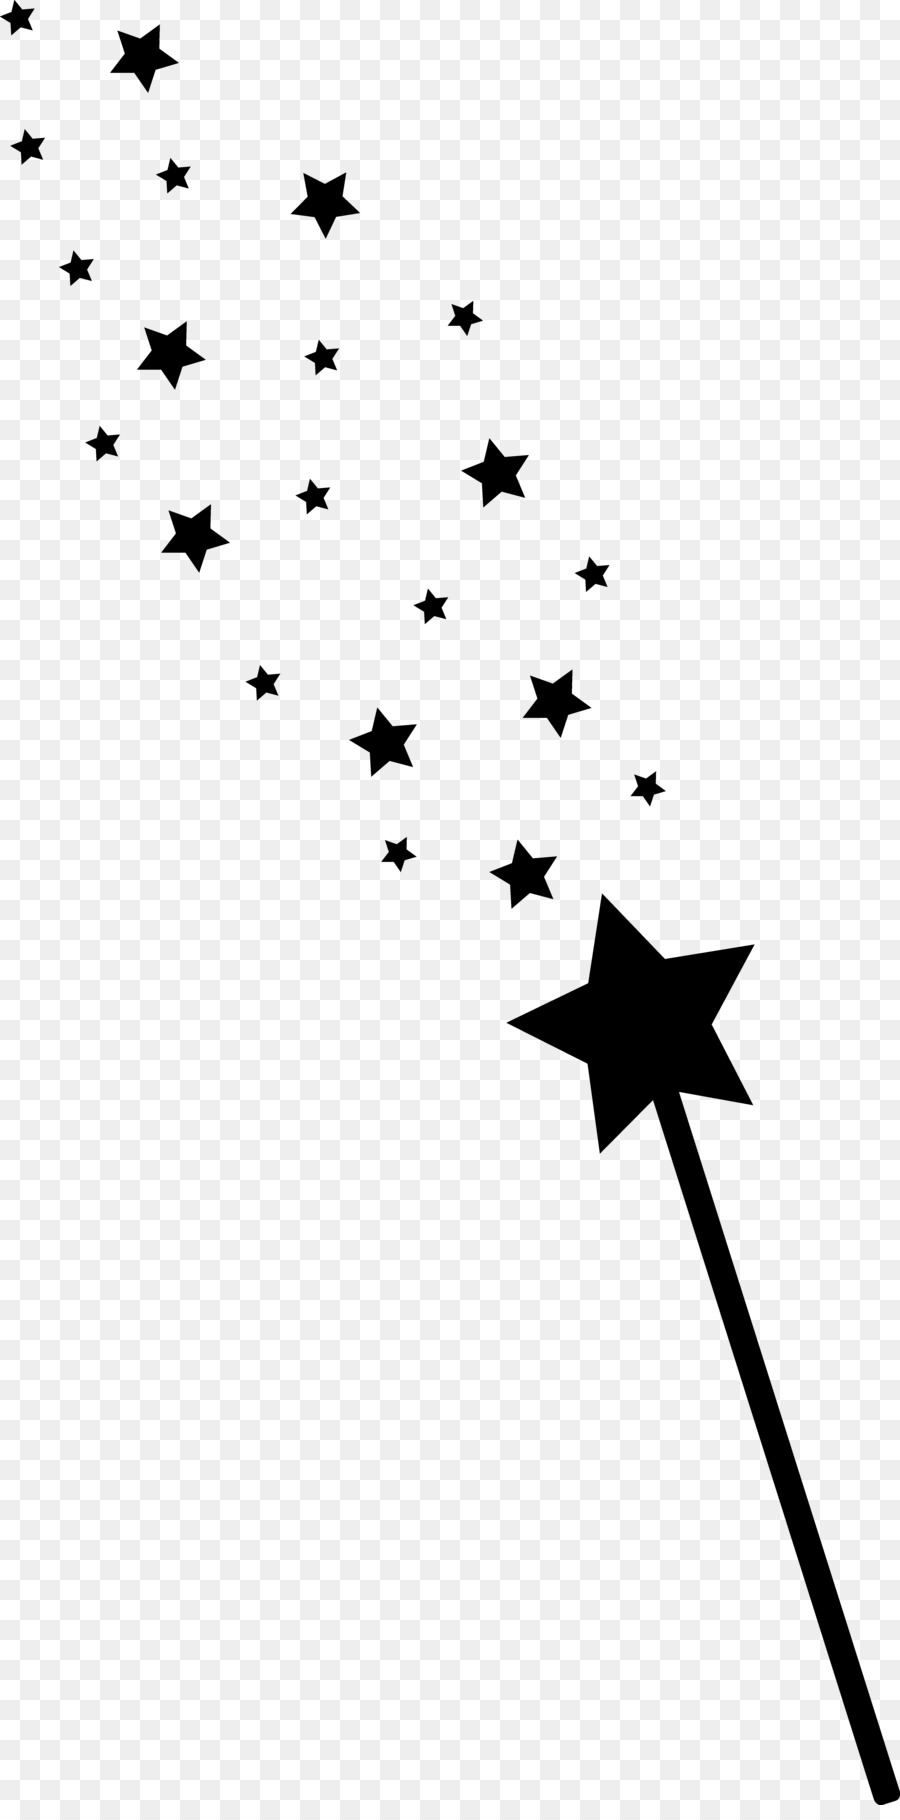 Free Fairy Wand Silhouette, Download Free Clip Art, Free.